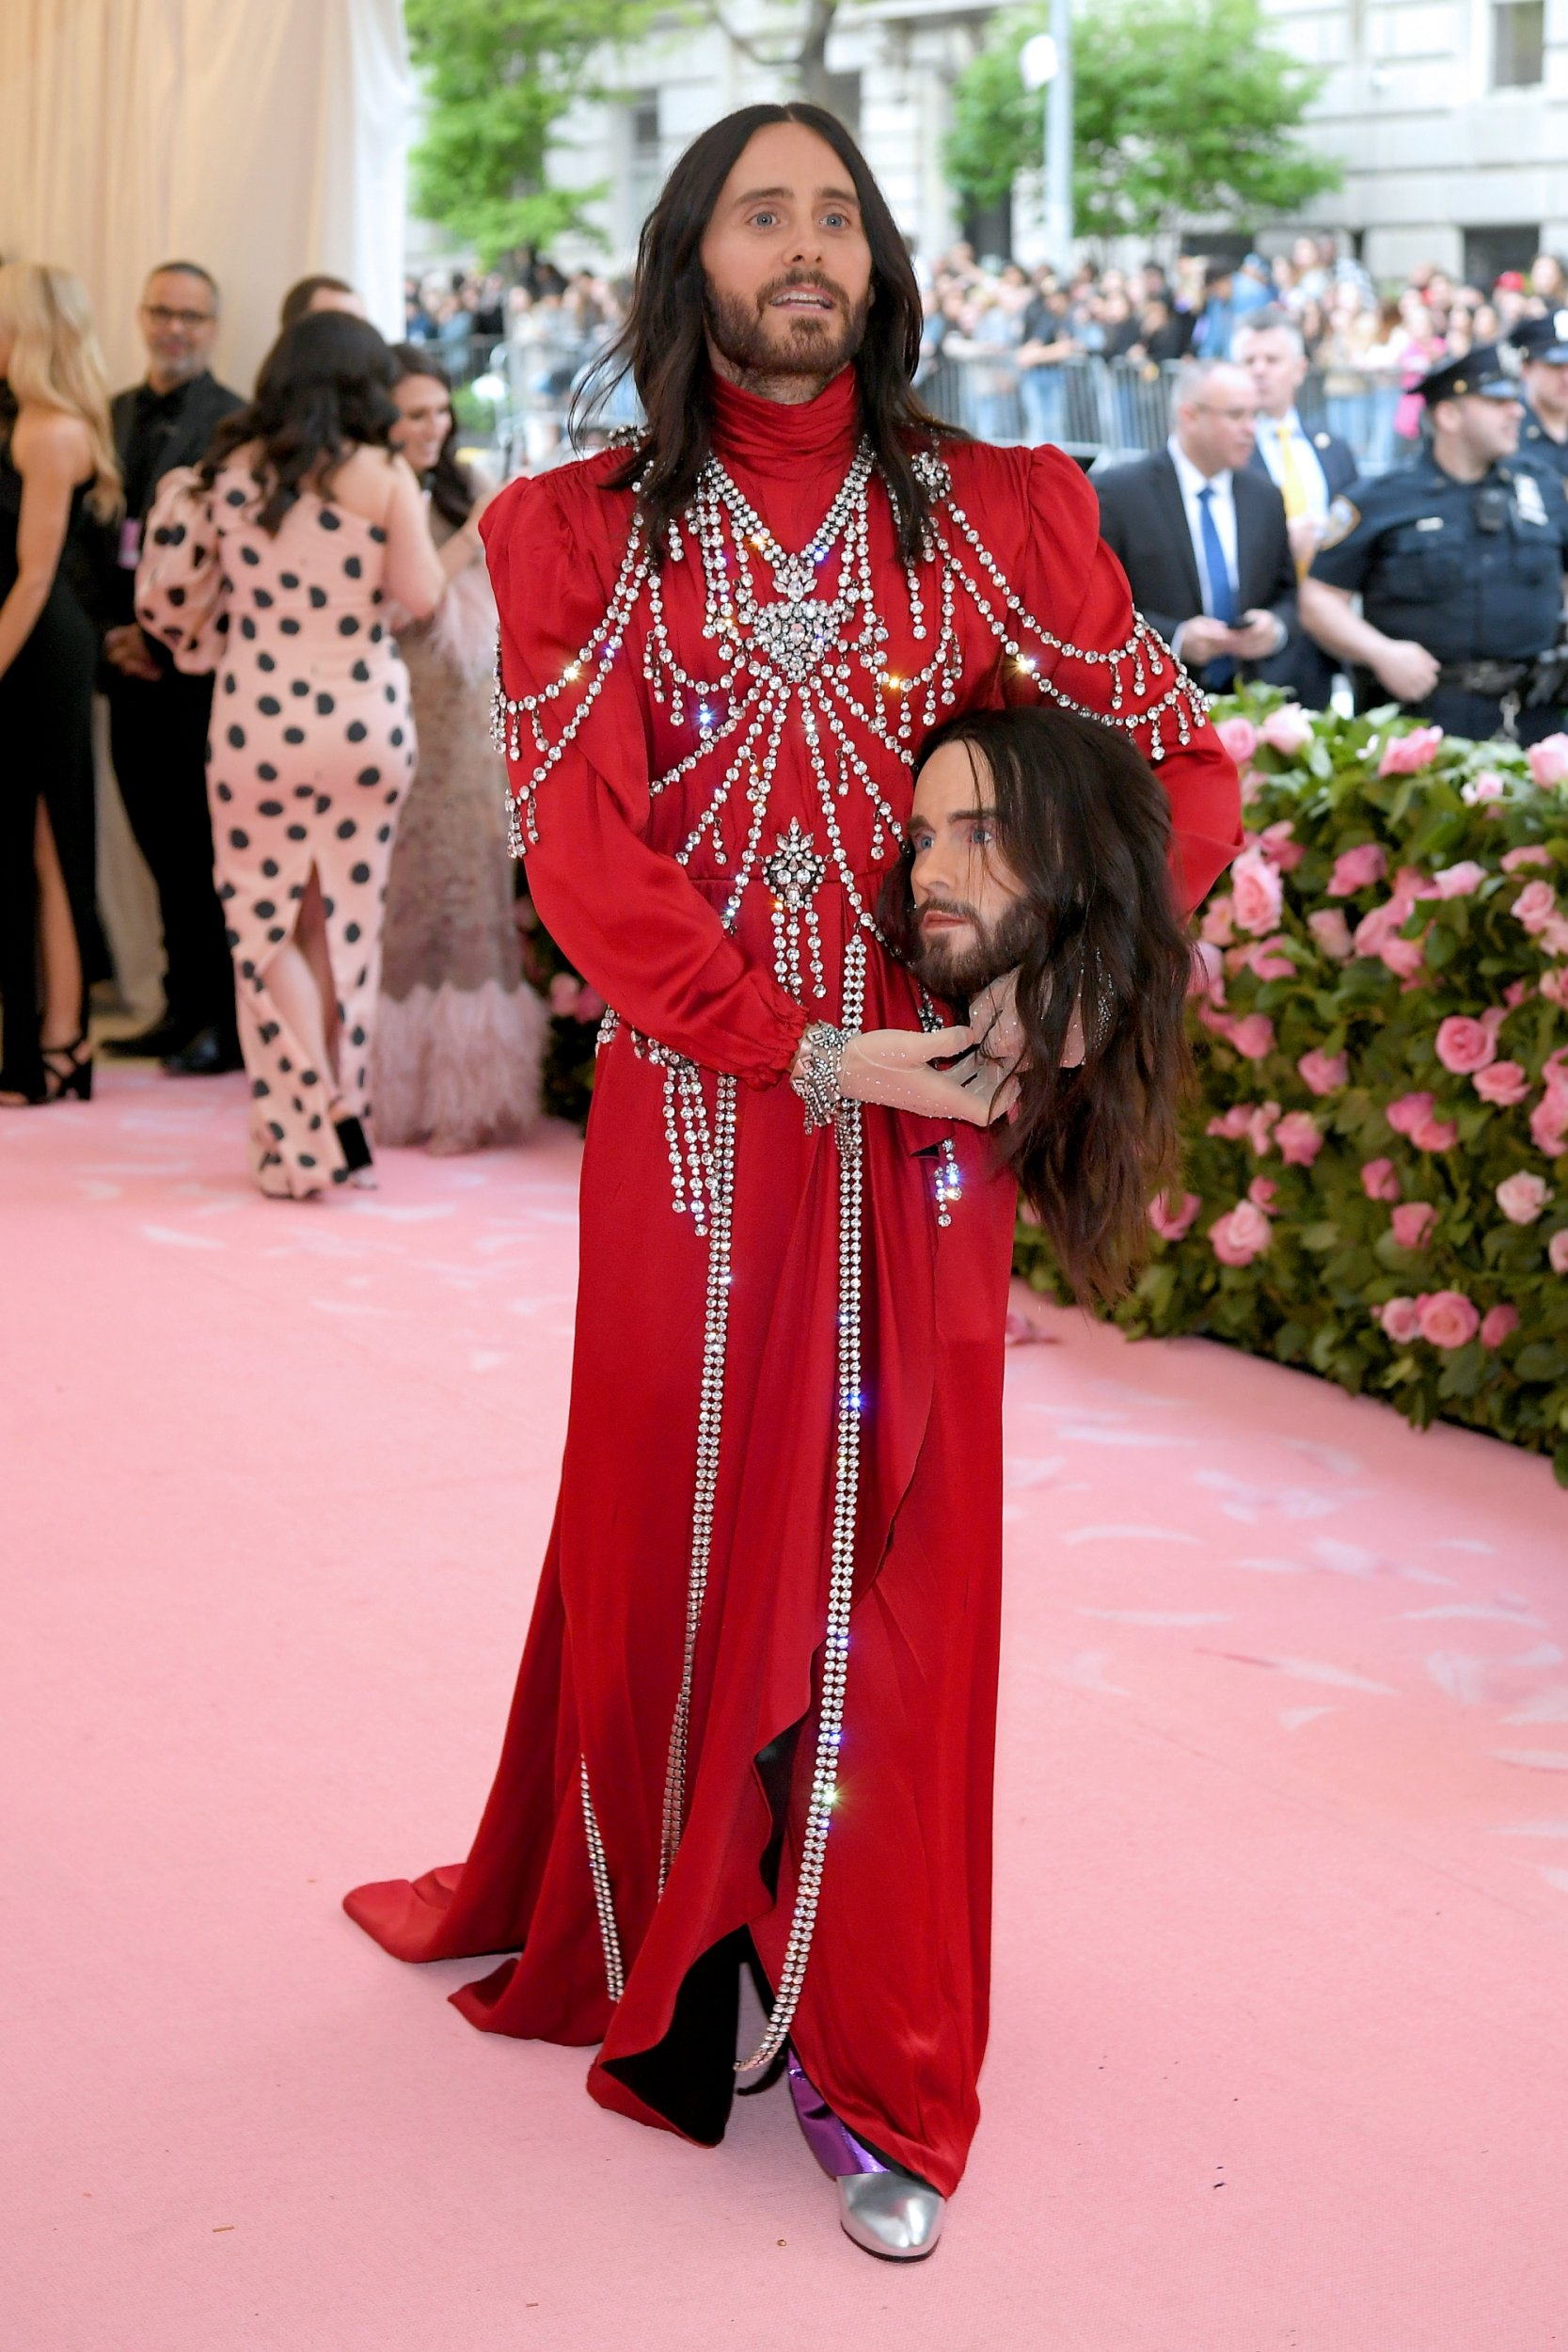 met gala 2019 fashion